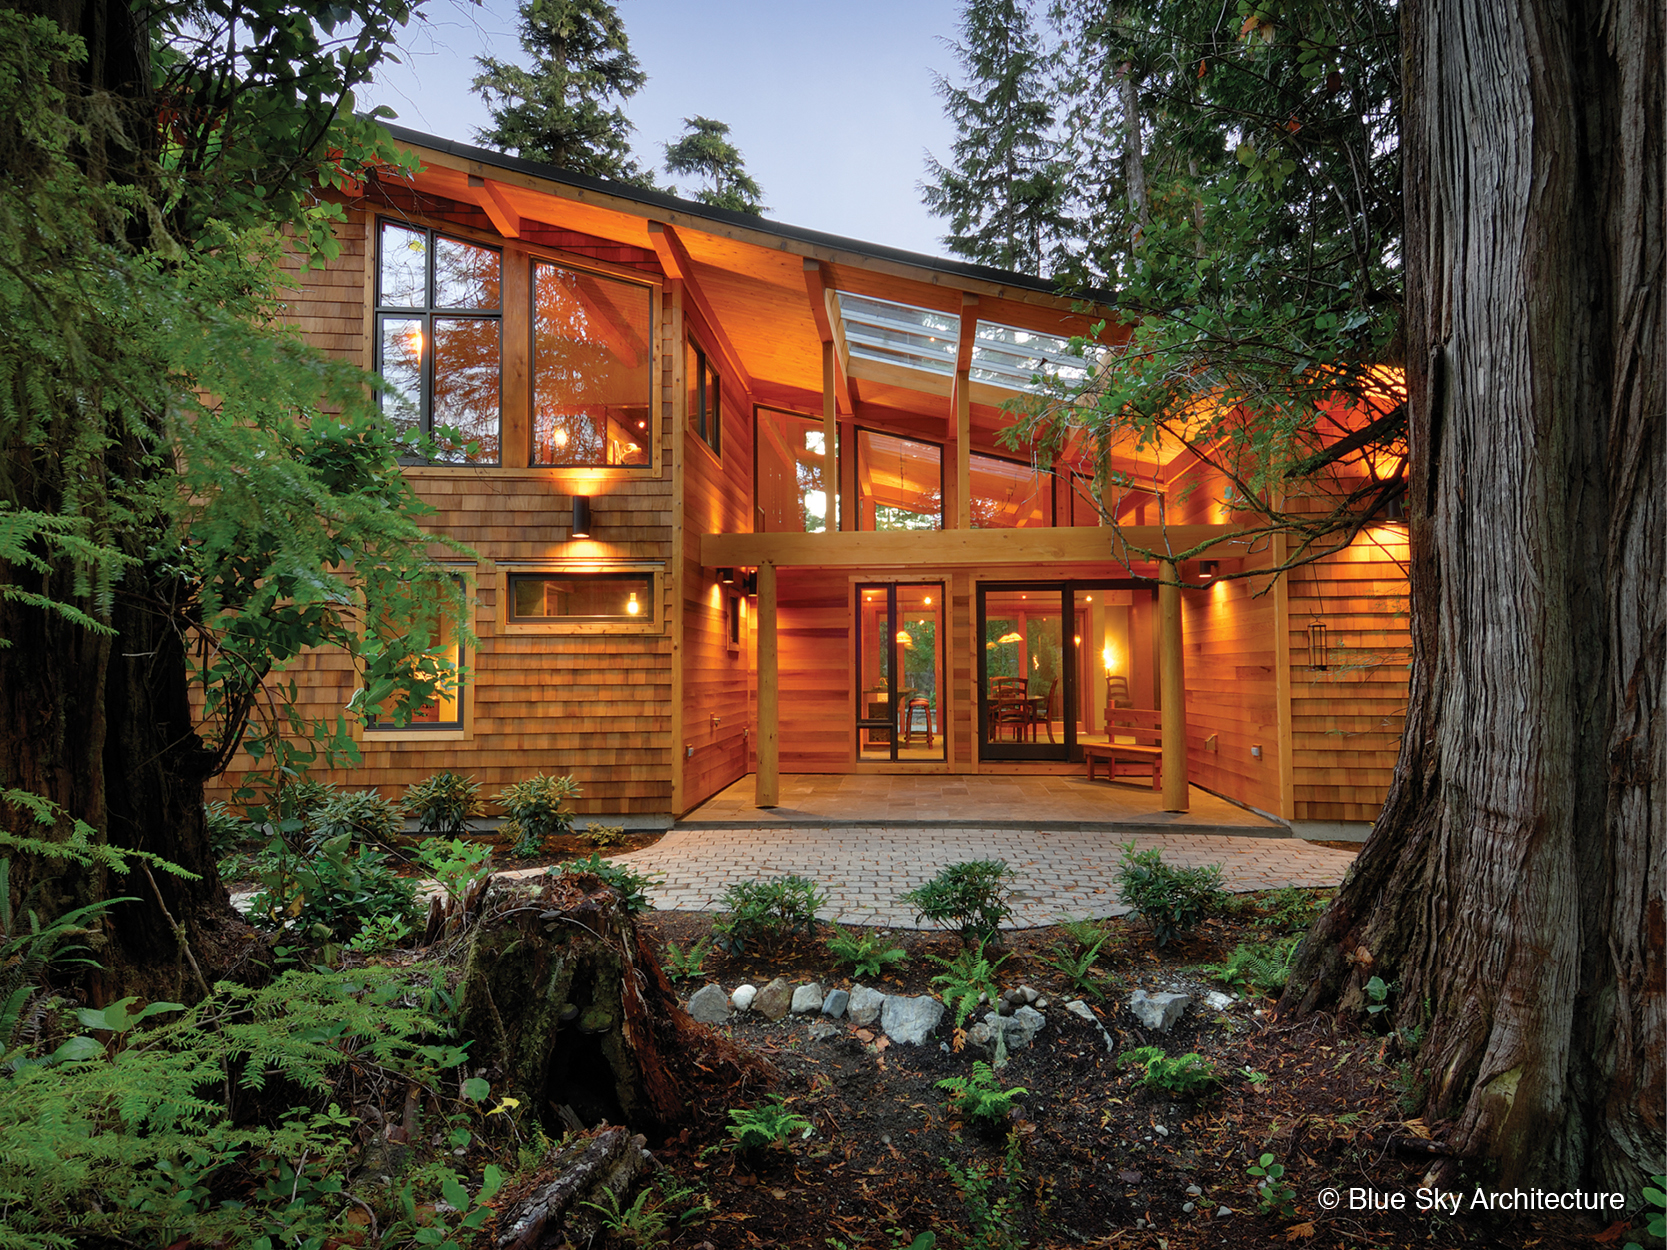 Angled roof and exterior view of the Rainforest House